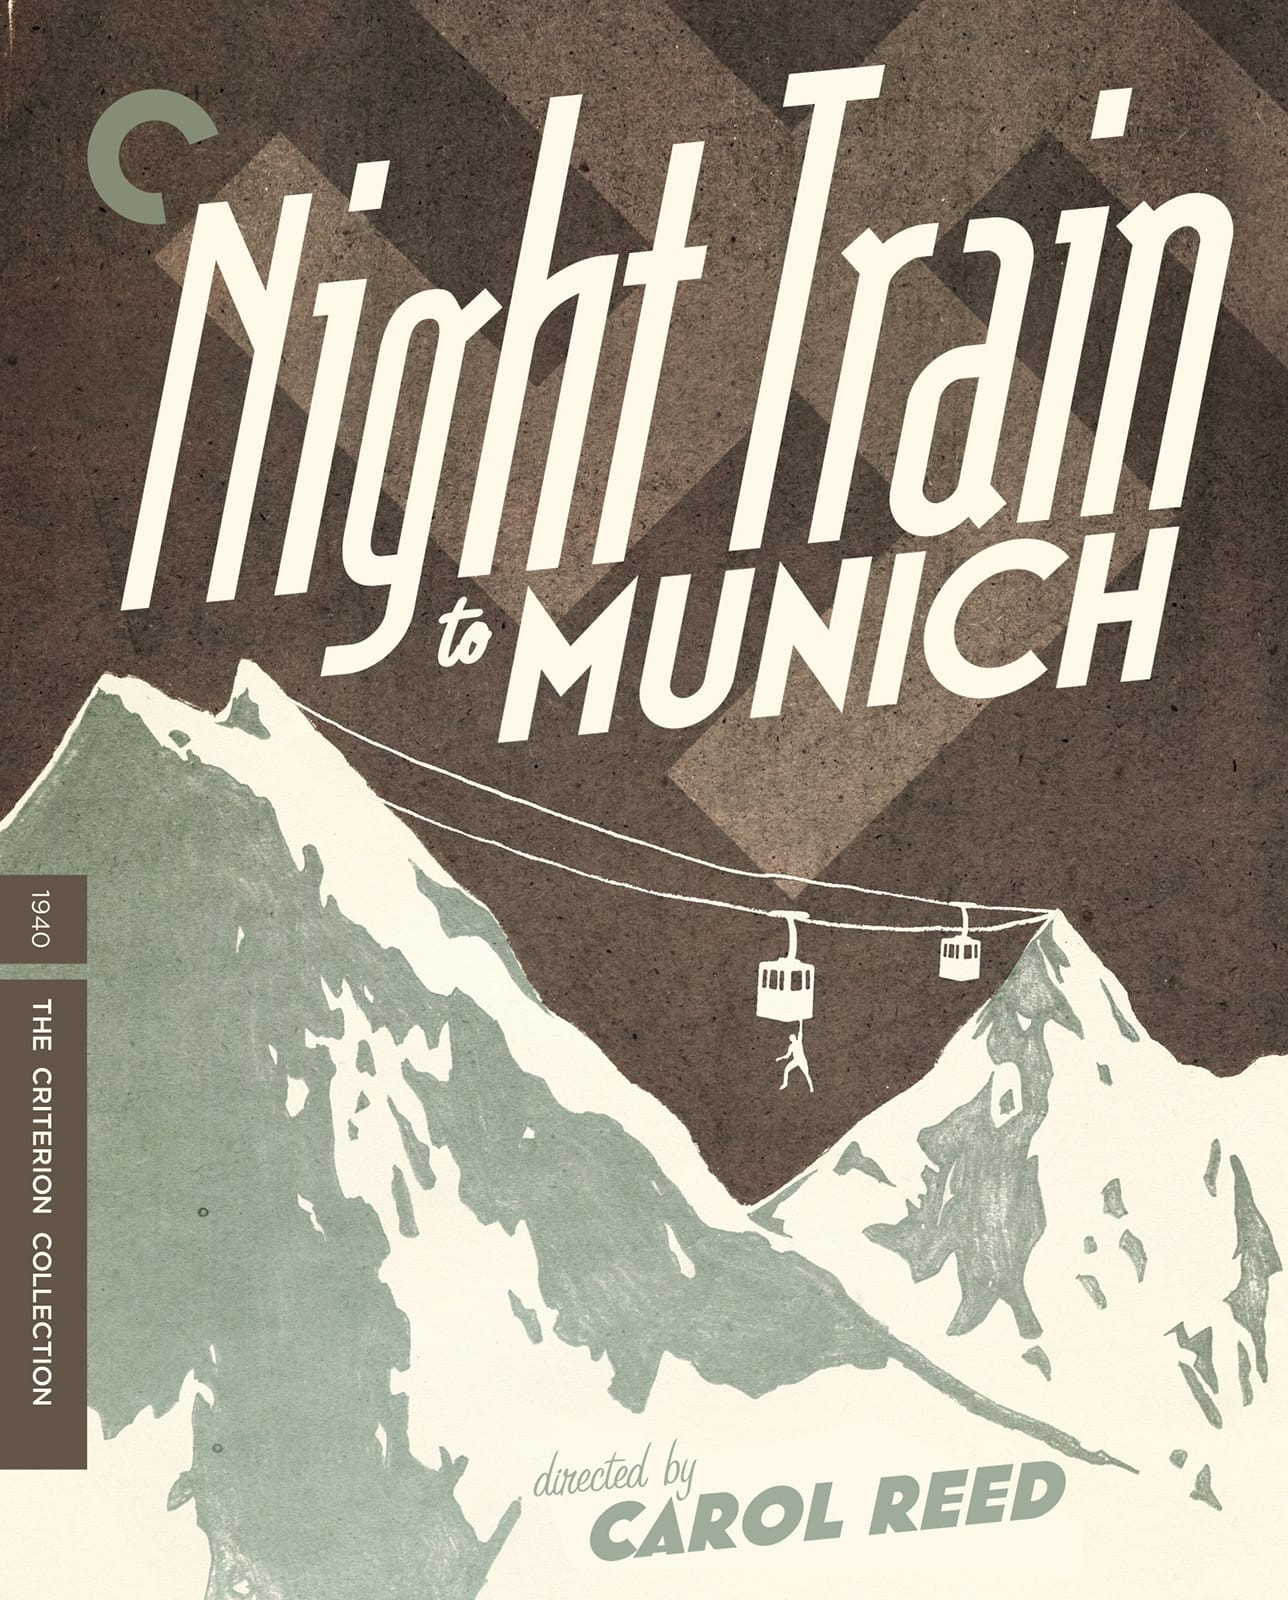 Blu Ray Review: Carol Reed's Night Train To Munich On The Criterion Intended For 2019 Reeds Migration Wall Decor Sets (Set Of 3) (View 3 of 20)